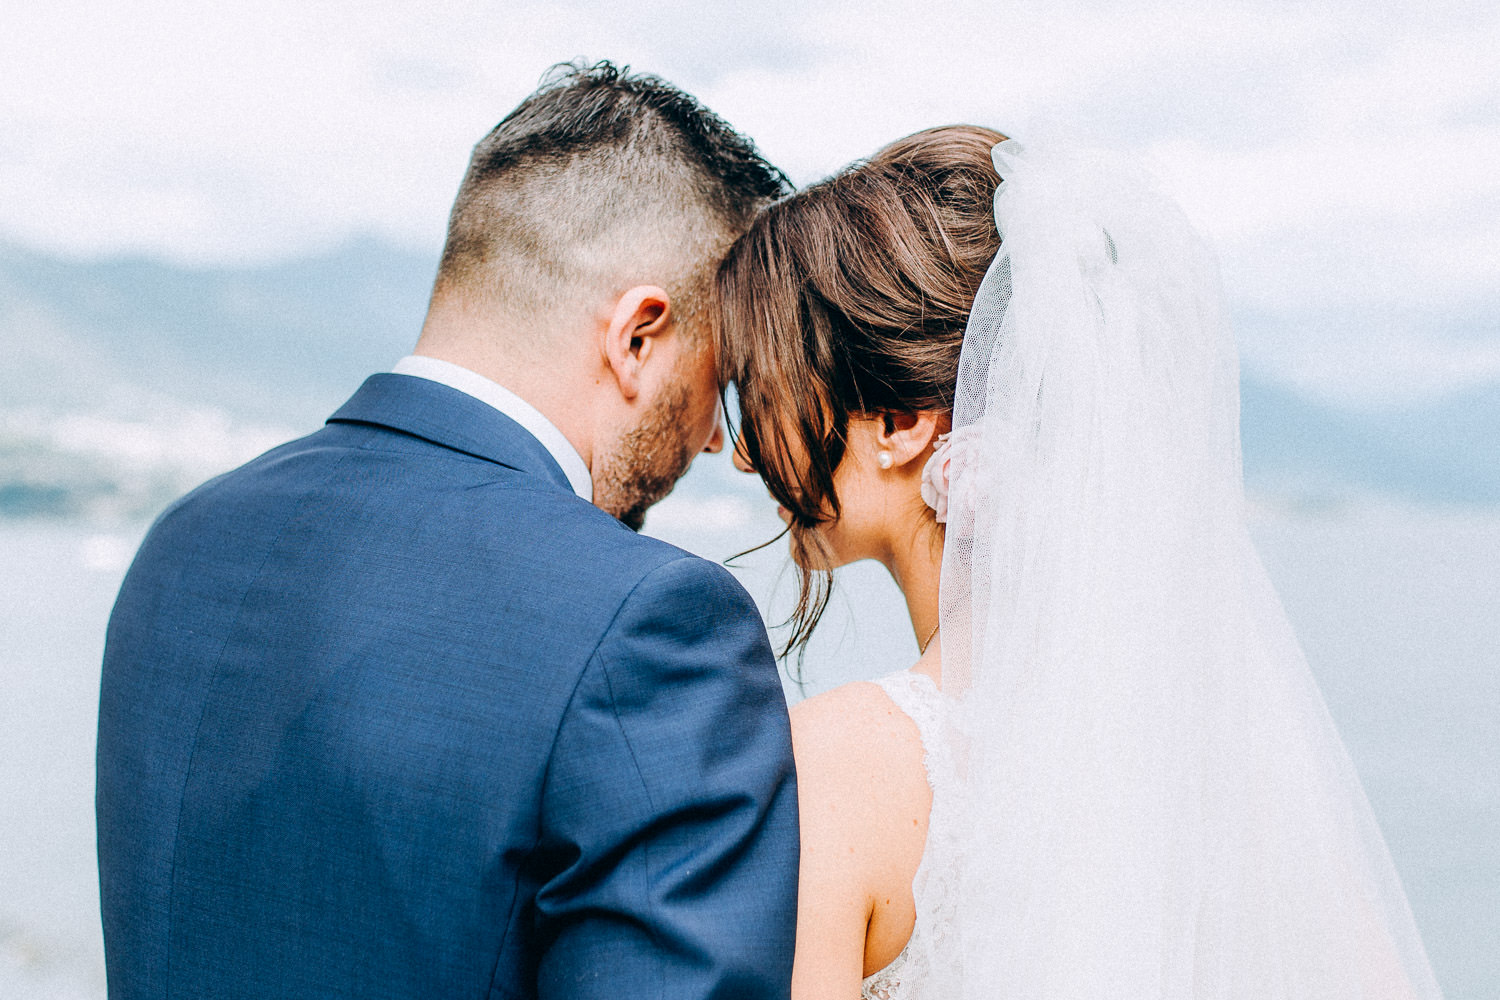 davidandkathrin-com-ticino-brissago-wedding-photographer-122